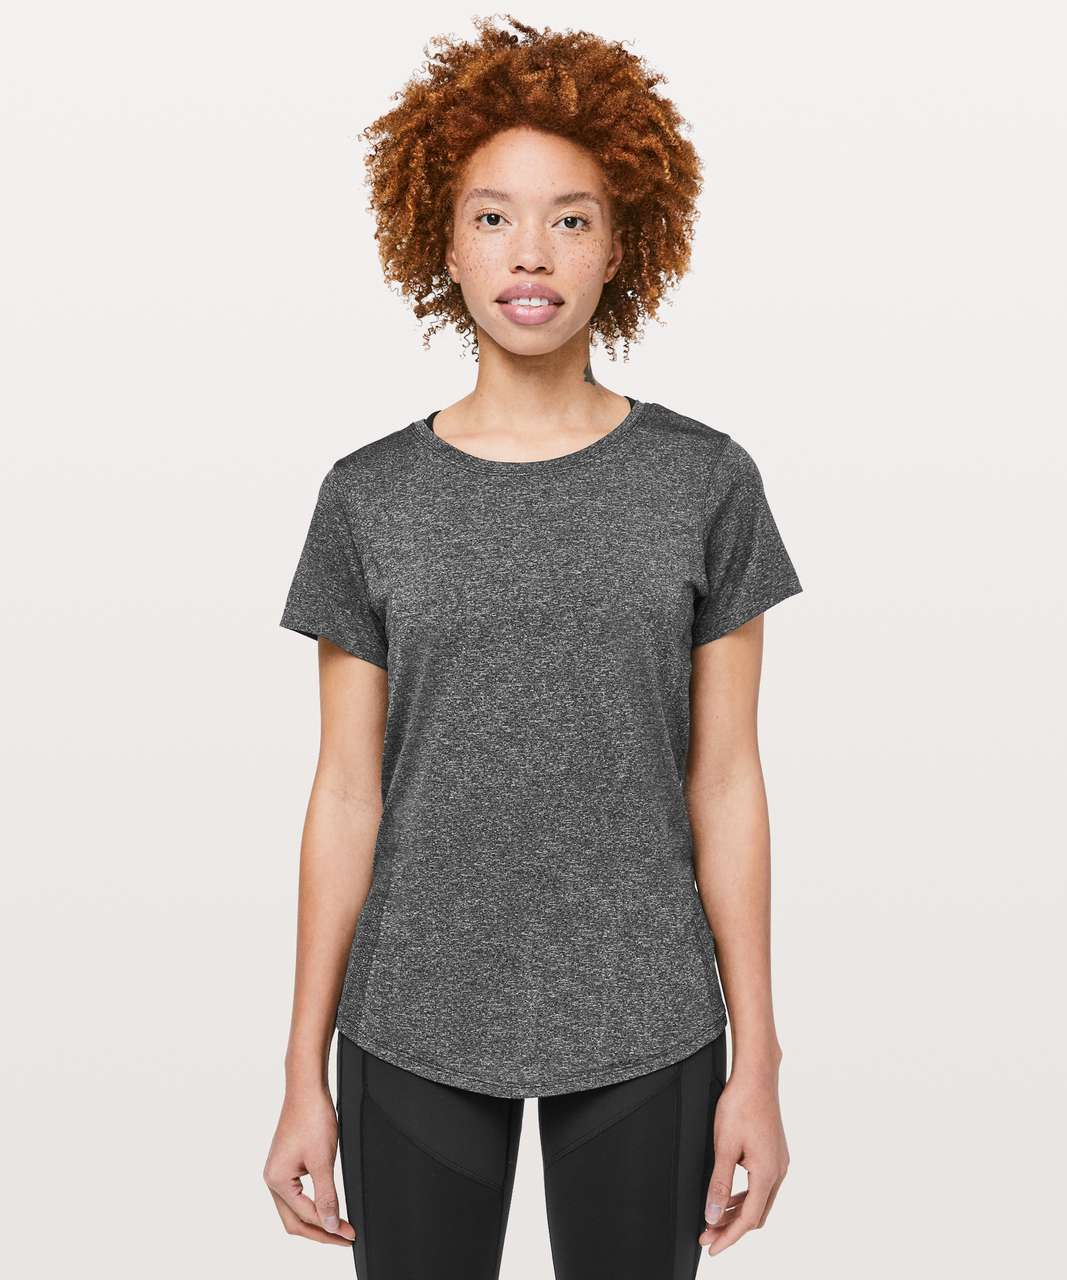 Lululemon Wait For Nothing Short Sleeve - Black / White